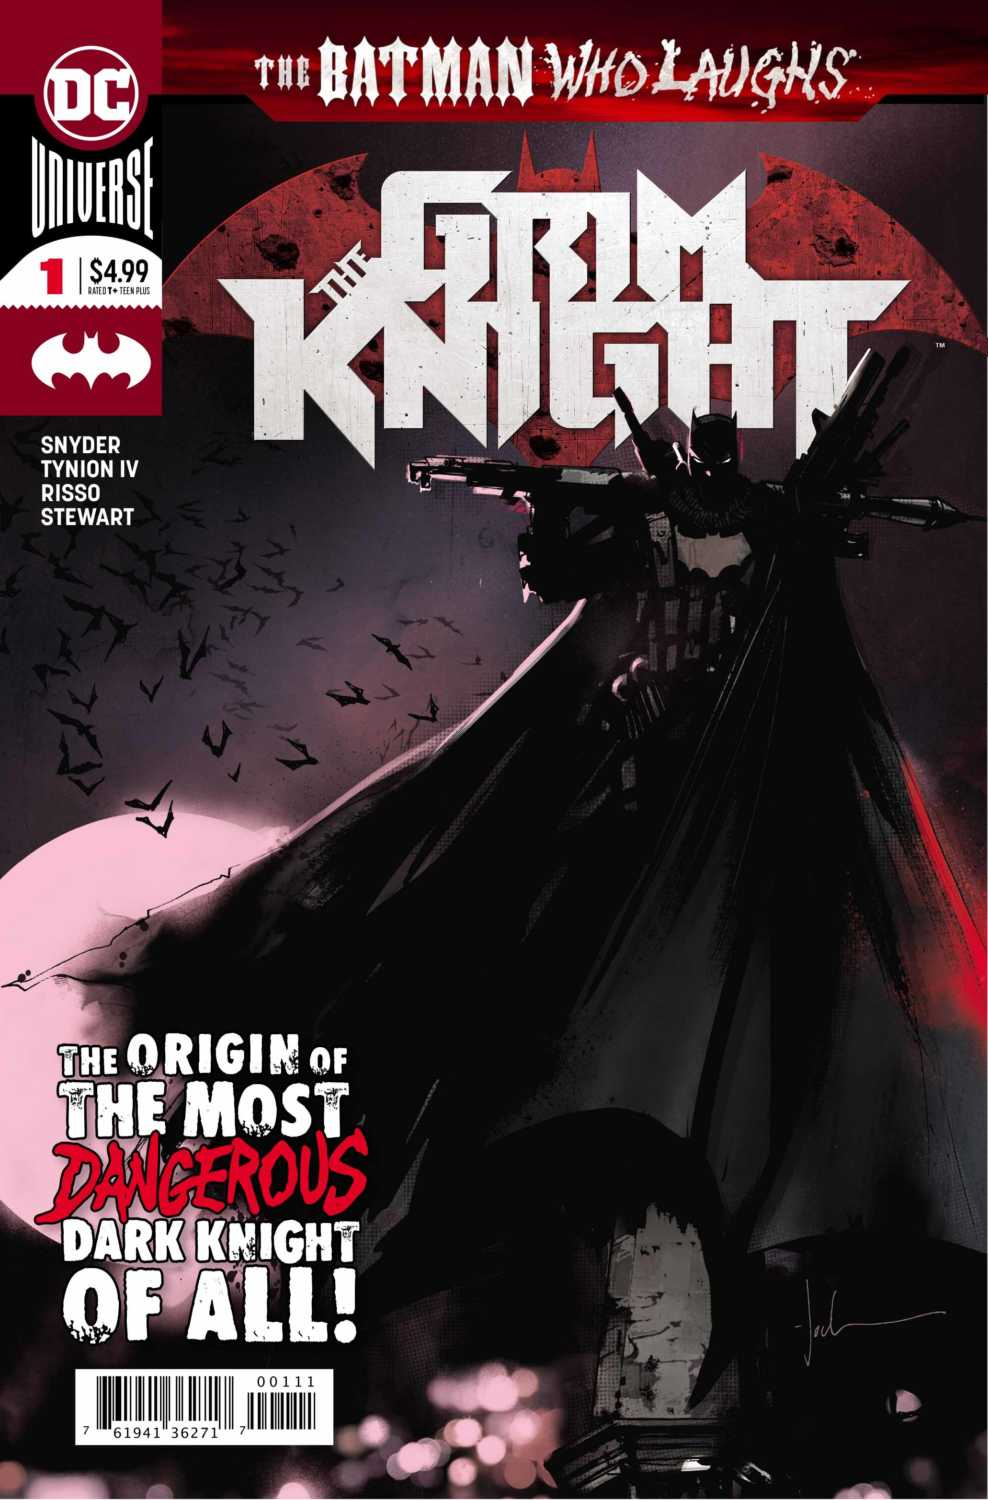 BATMAN WHO LAUGHS: GRIM KNIGHT main cover